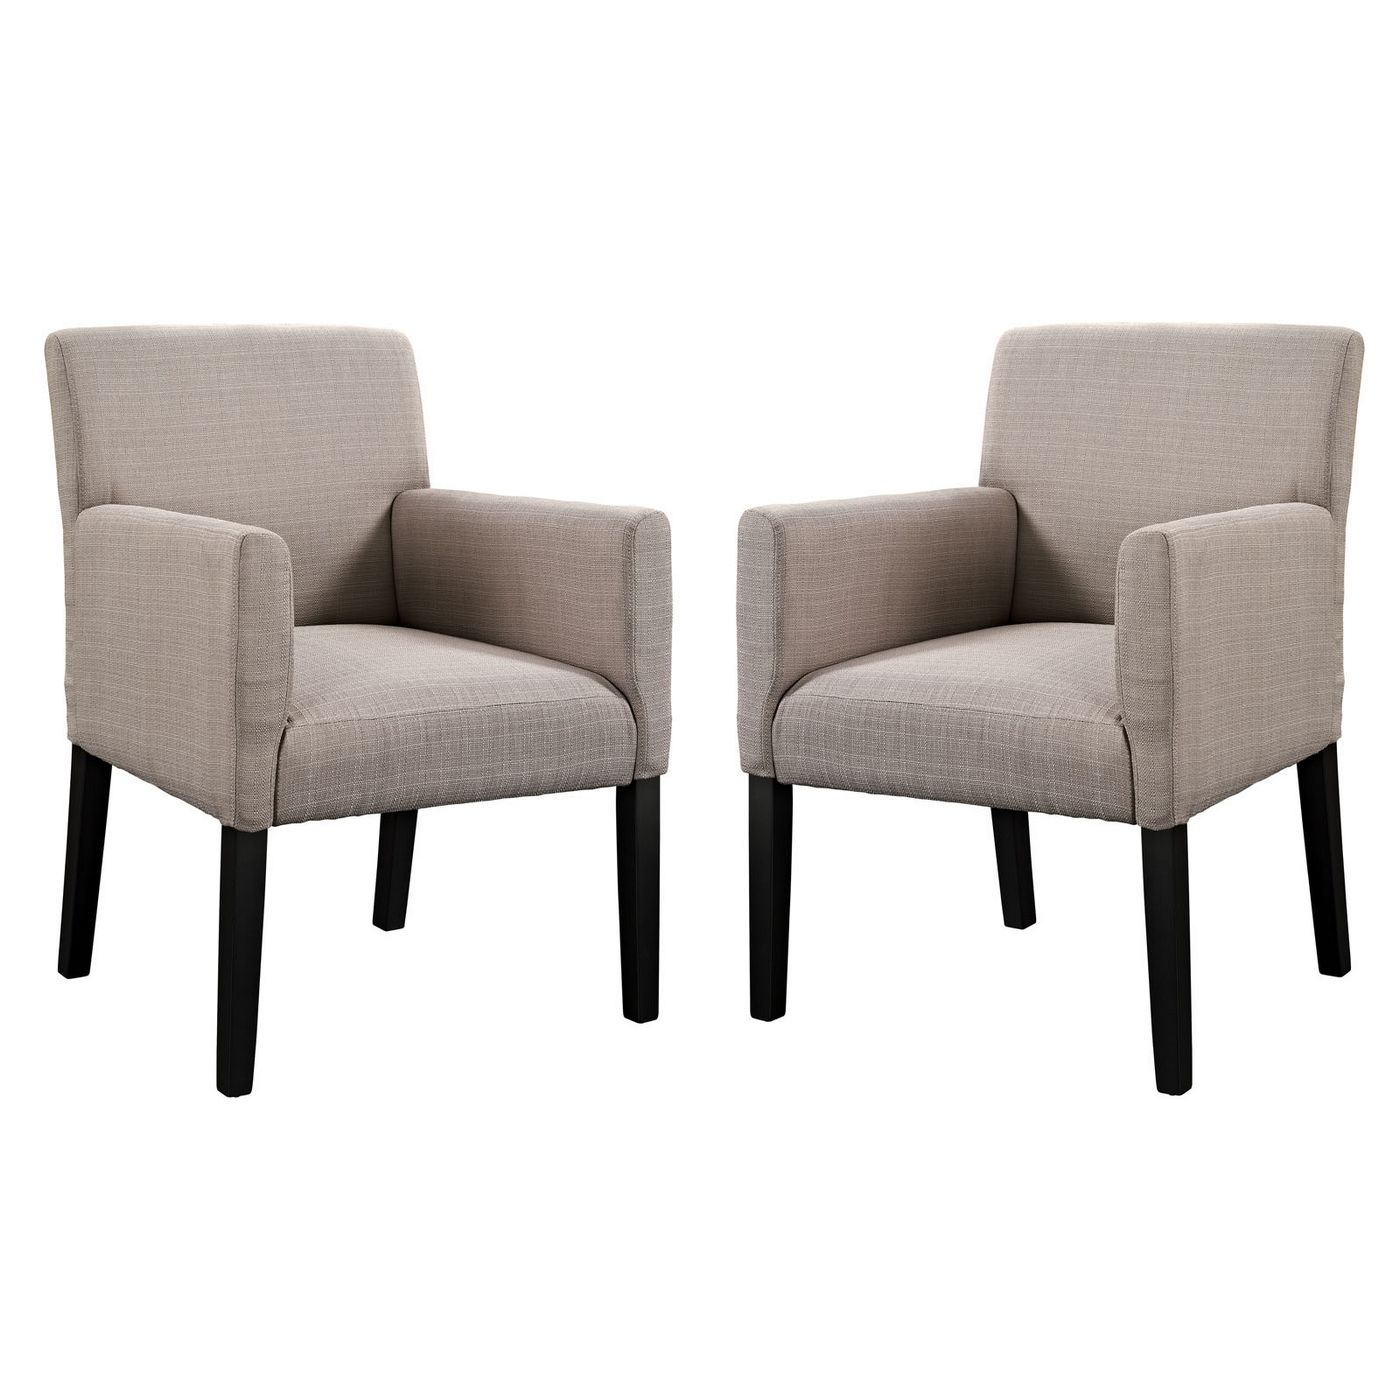 Chloe contemporary upholstered armchair with wood legs beige for Contemporary armchair